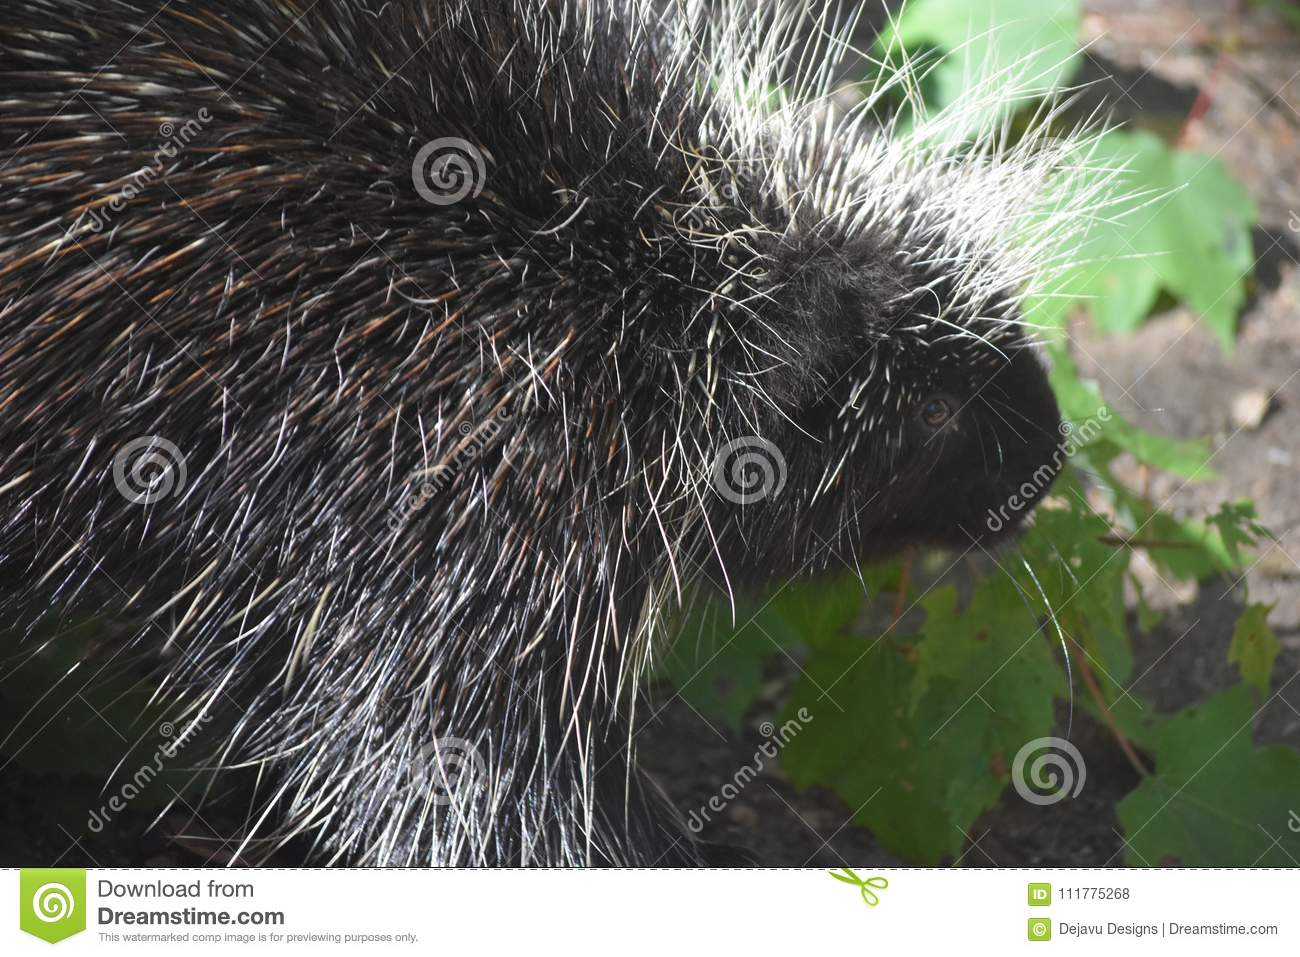 Close up on the face of a black and white porcupine